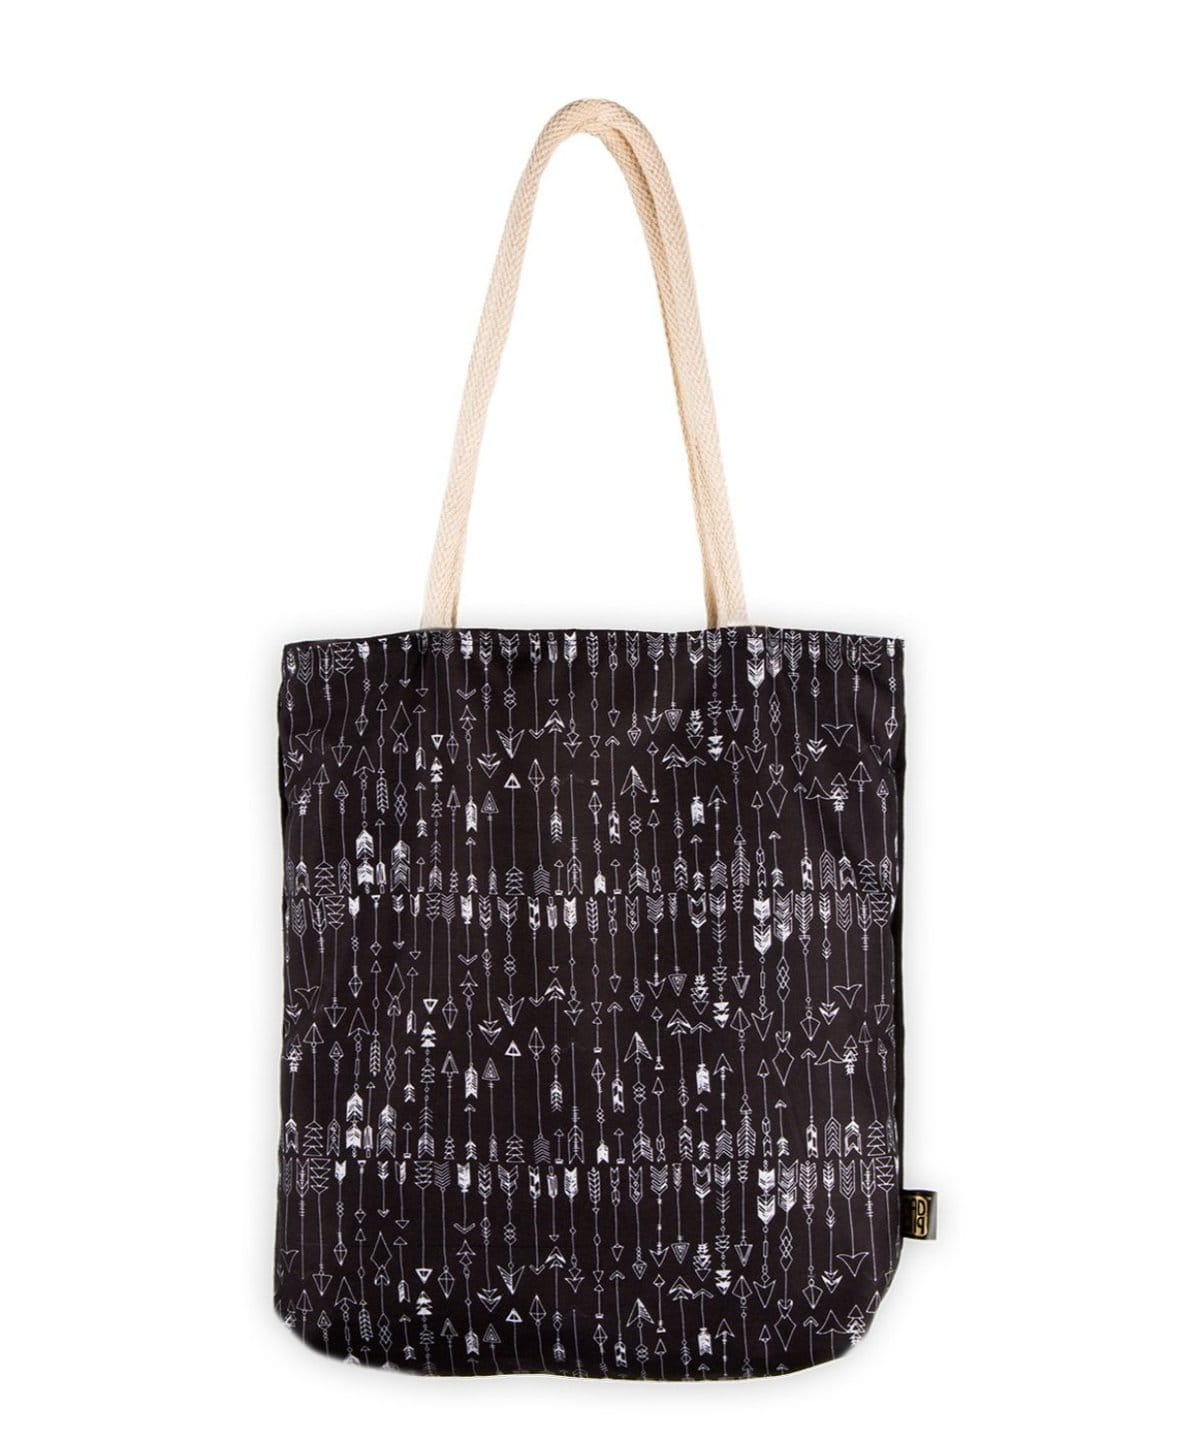 Bohemian Tote Bag. Uptownie.